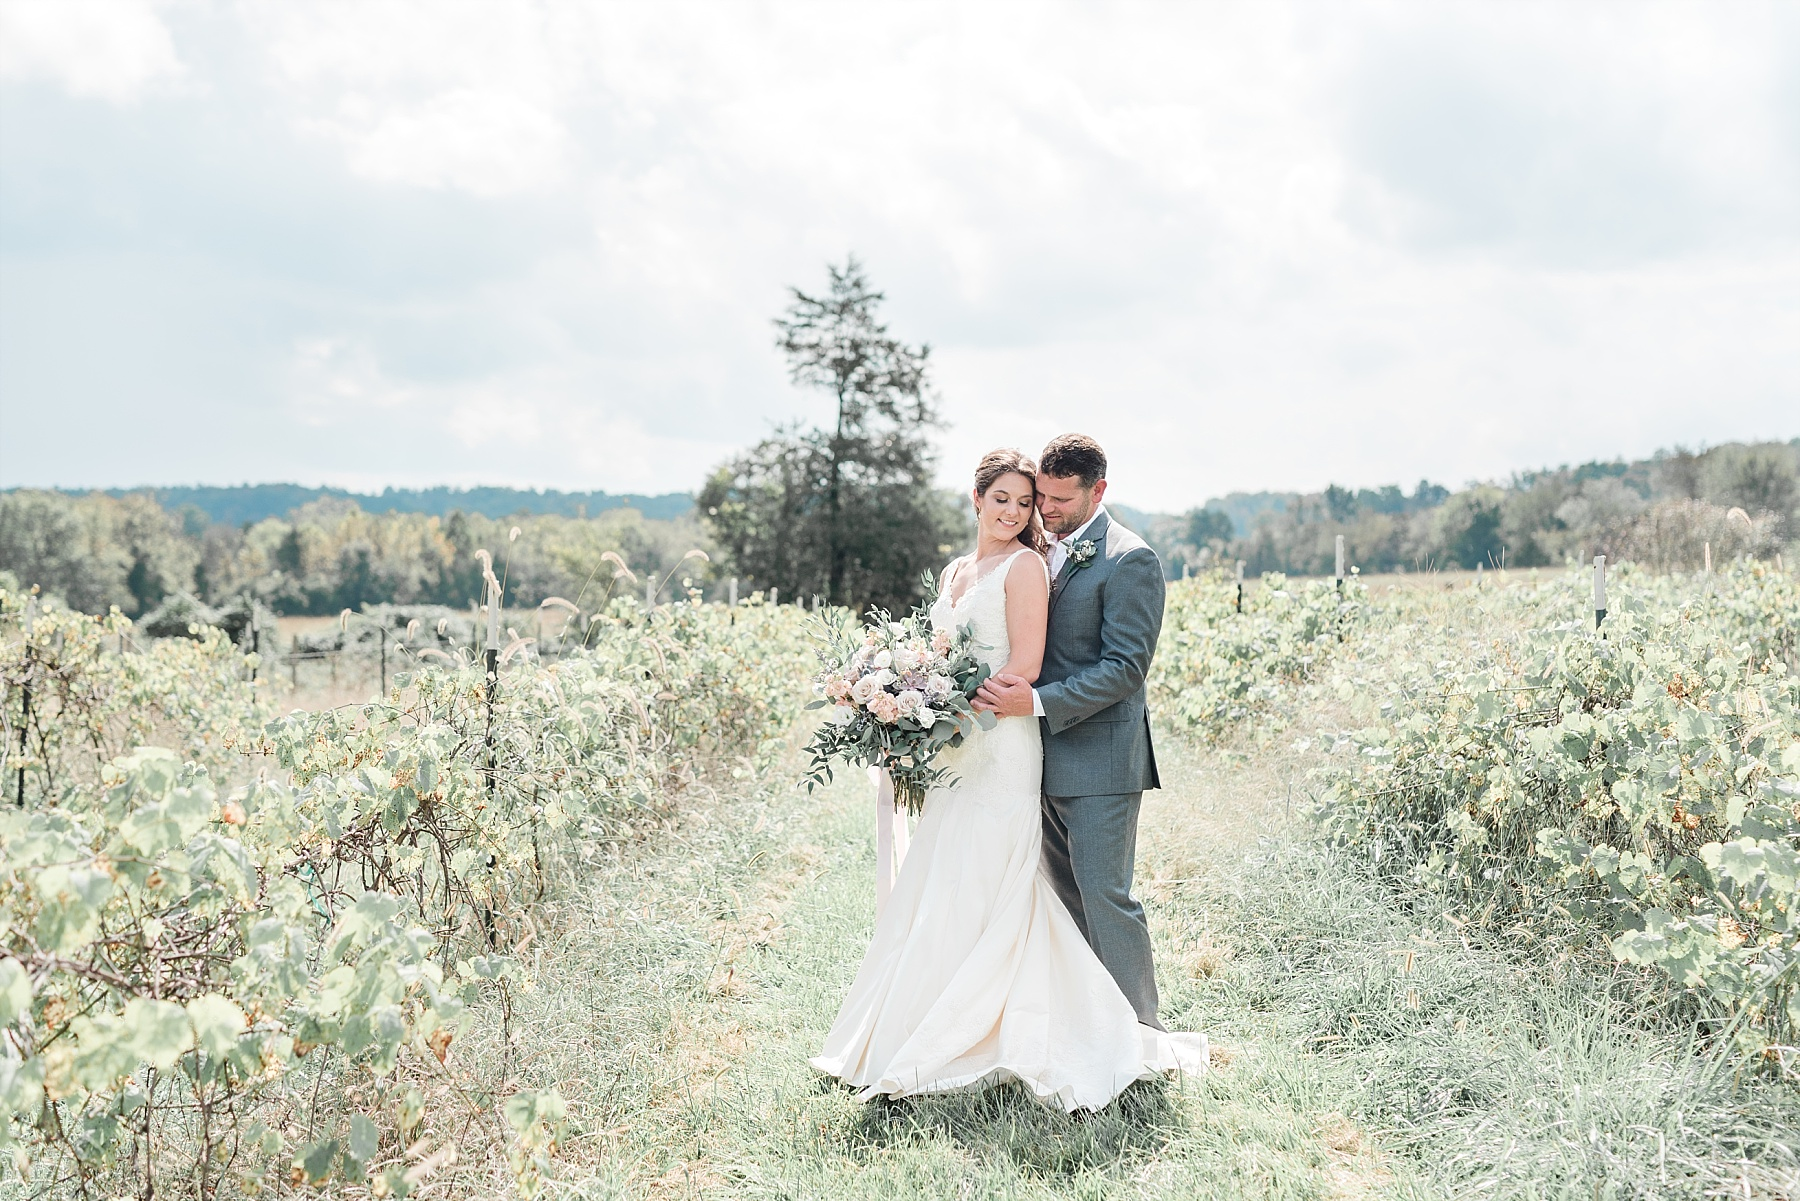 Miles and Daniela Walker Sunset Themed Weddig at Dodson Orchards St Louis Missouri by Kelsi Kliethermes Photography_0035.jpg